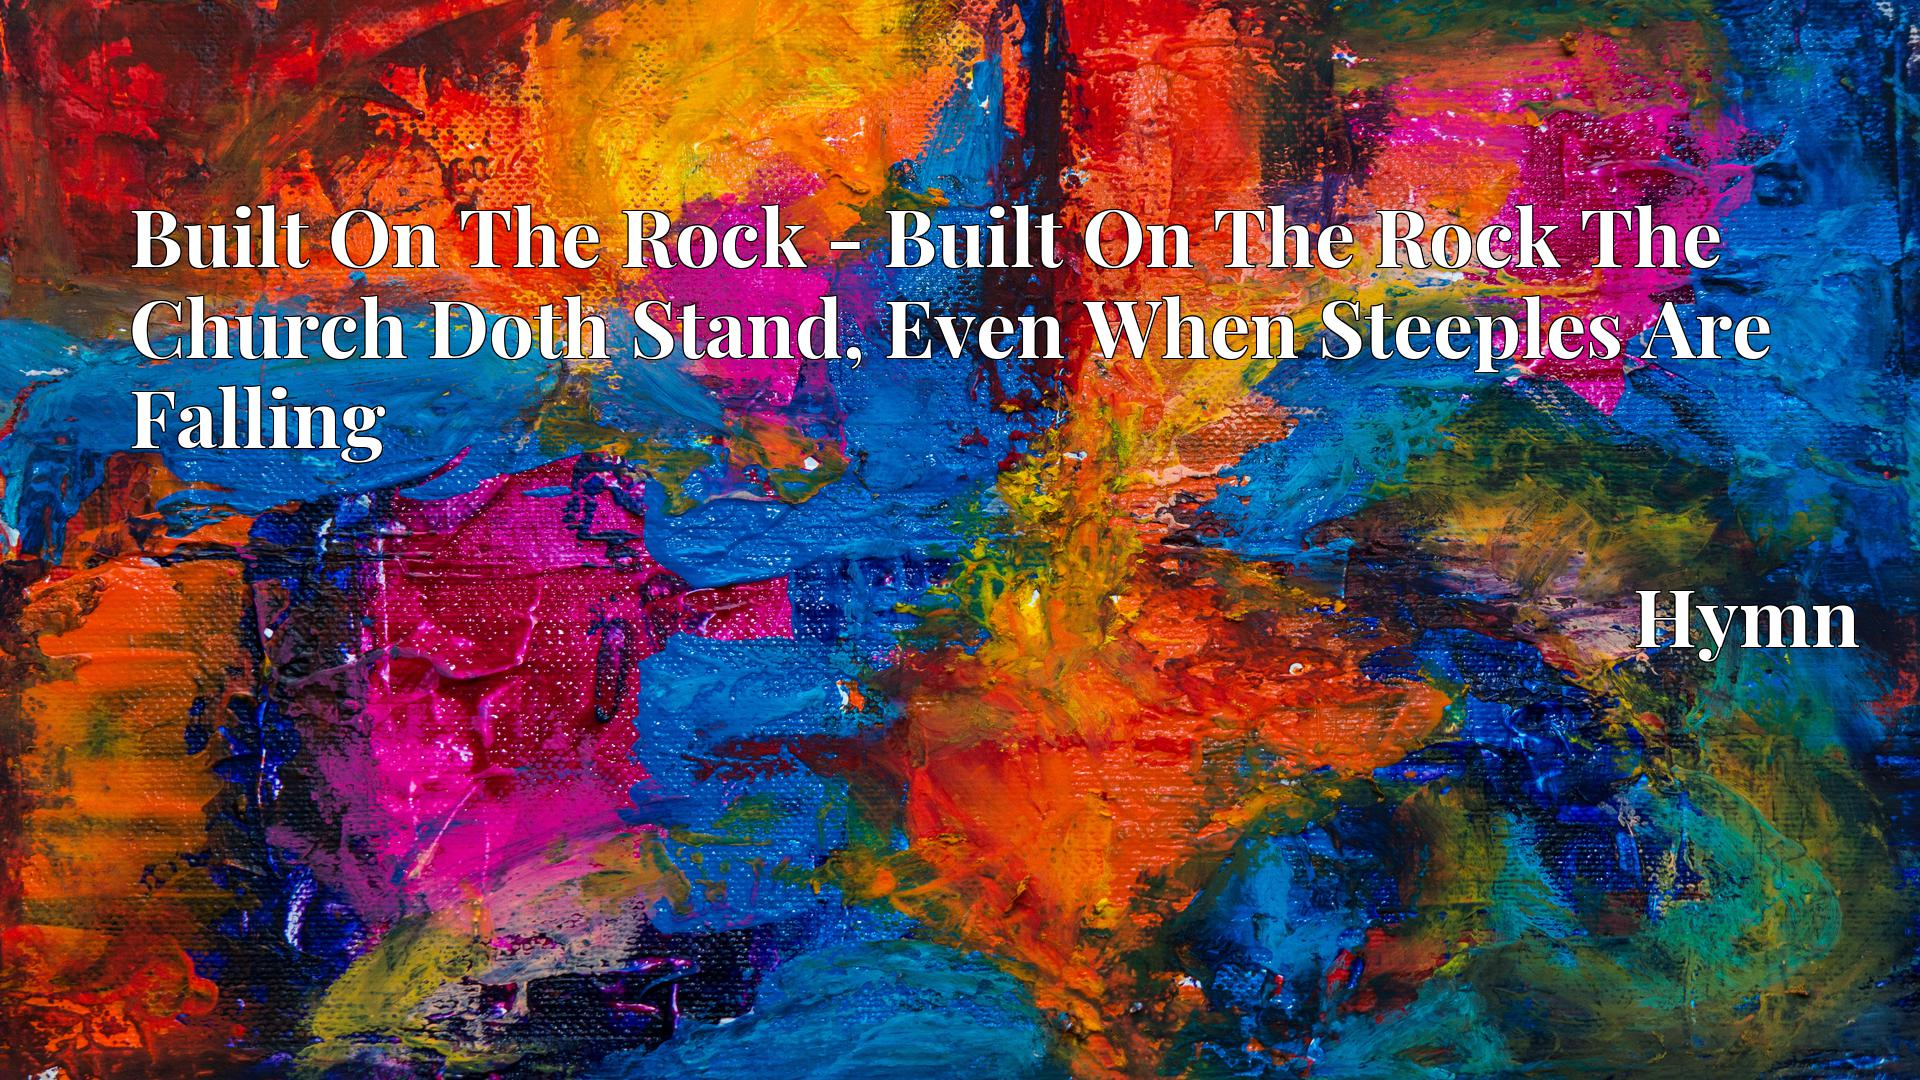 Built On The Rock - Built On The Rock The Church Doth Stand, Even When Steeples Are Falling - Hymn